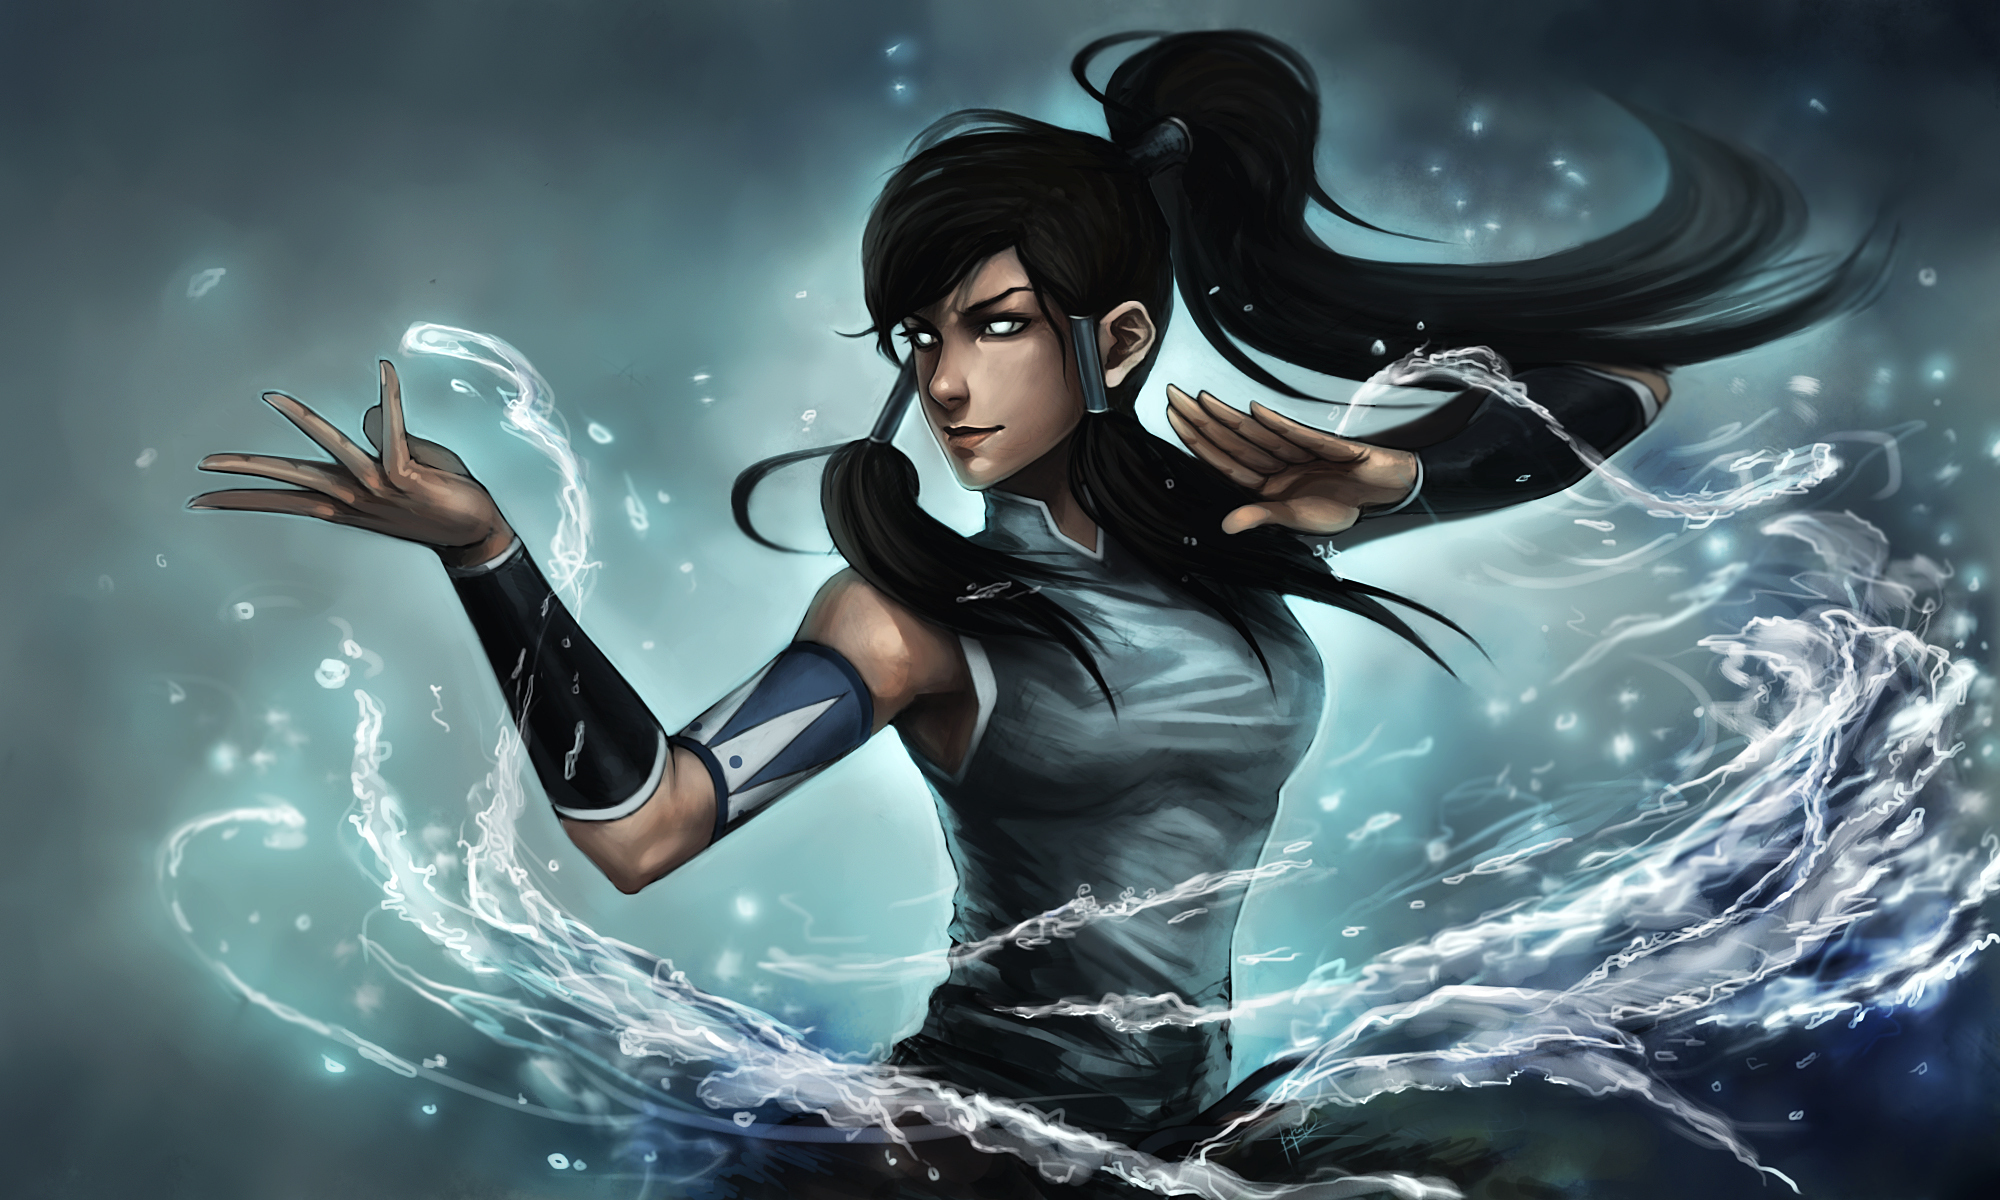 korra - Avatar: The Legend of Korra Photo (30957355) - Fanpop fanclubs